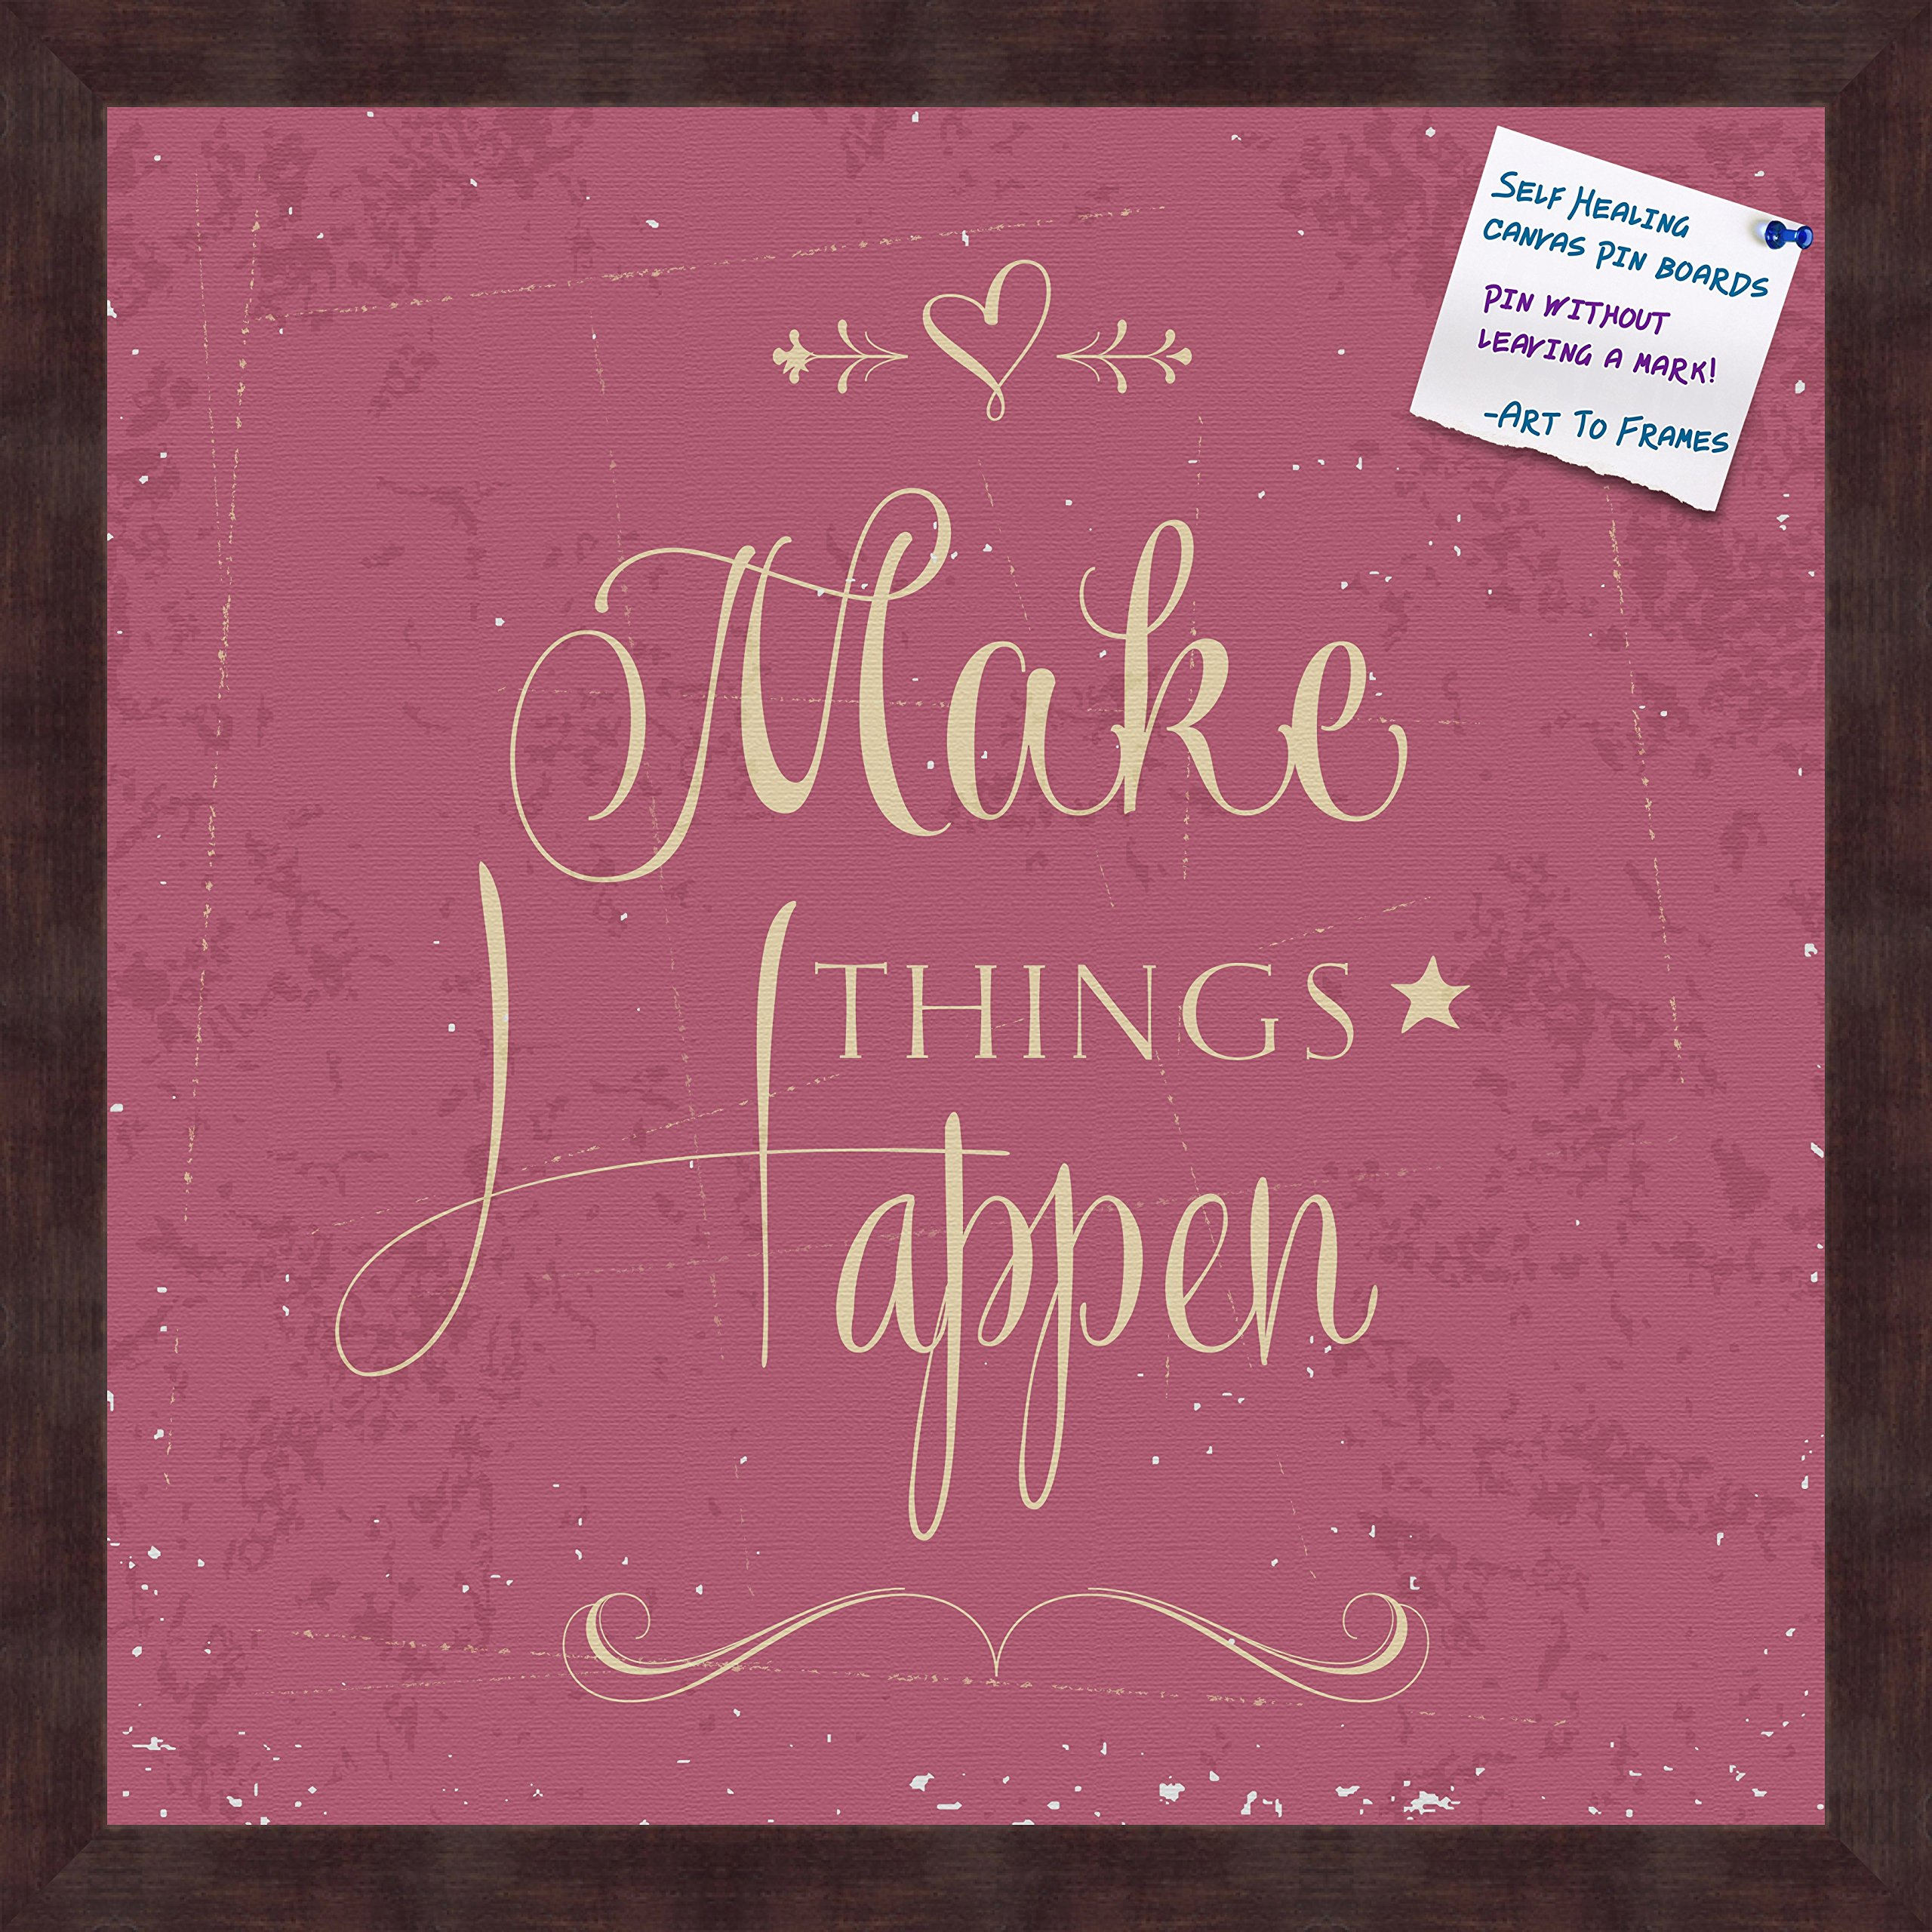 PinPix decorative pin cork bulletin board made from self-healing canvas, Make Things Happen Fuschia Print printed at 16x16 Inches and framed in Coffee(WOM1343) by PinPix